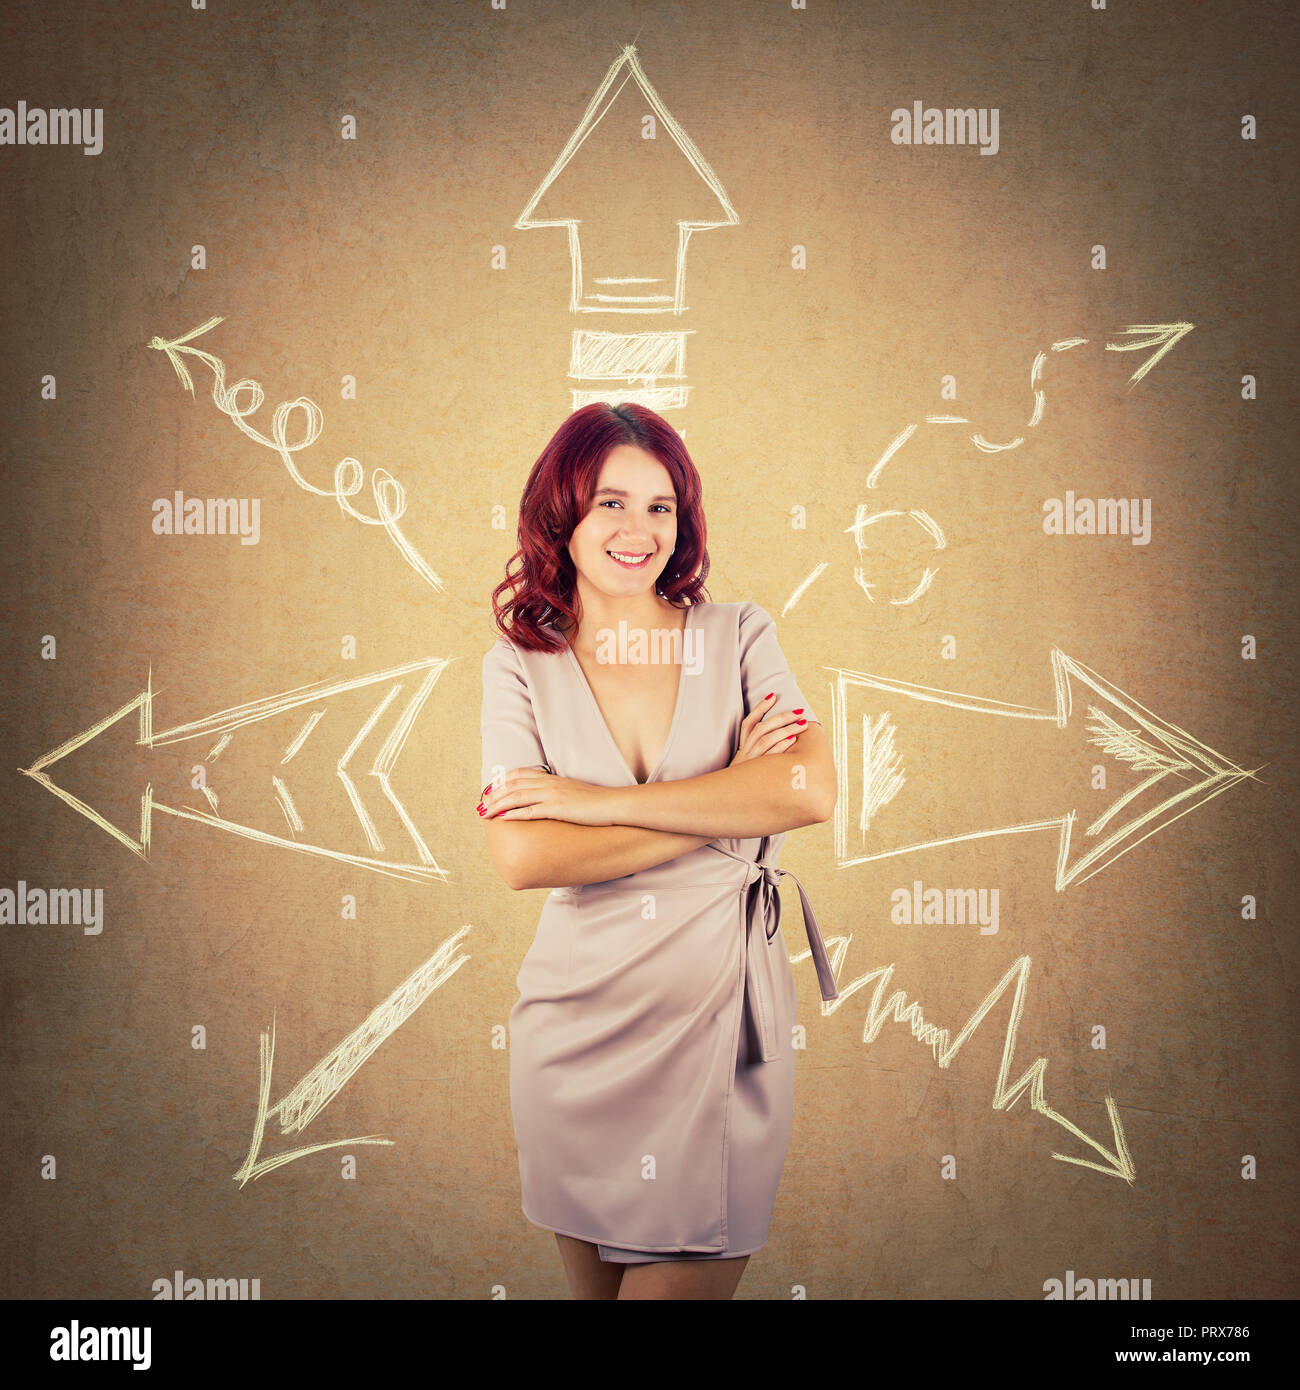 Redhead woman standing with arms crossed and arrows pointed to different directions over colorful background. Difficult choice, decide which way to go - Stock Image